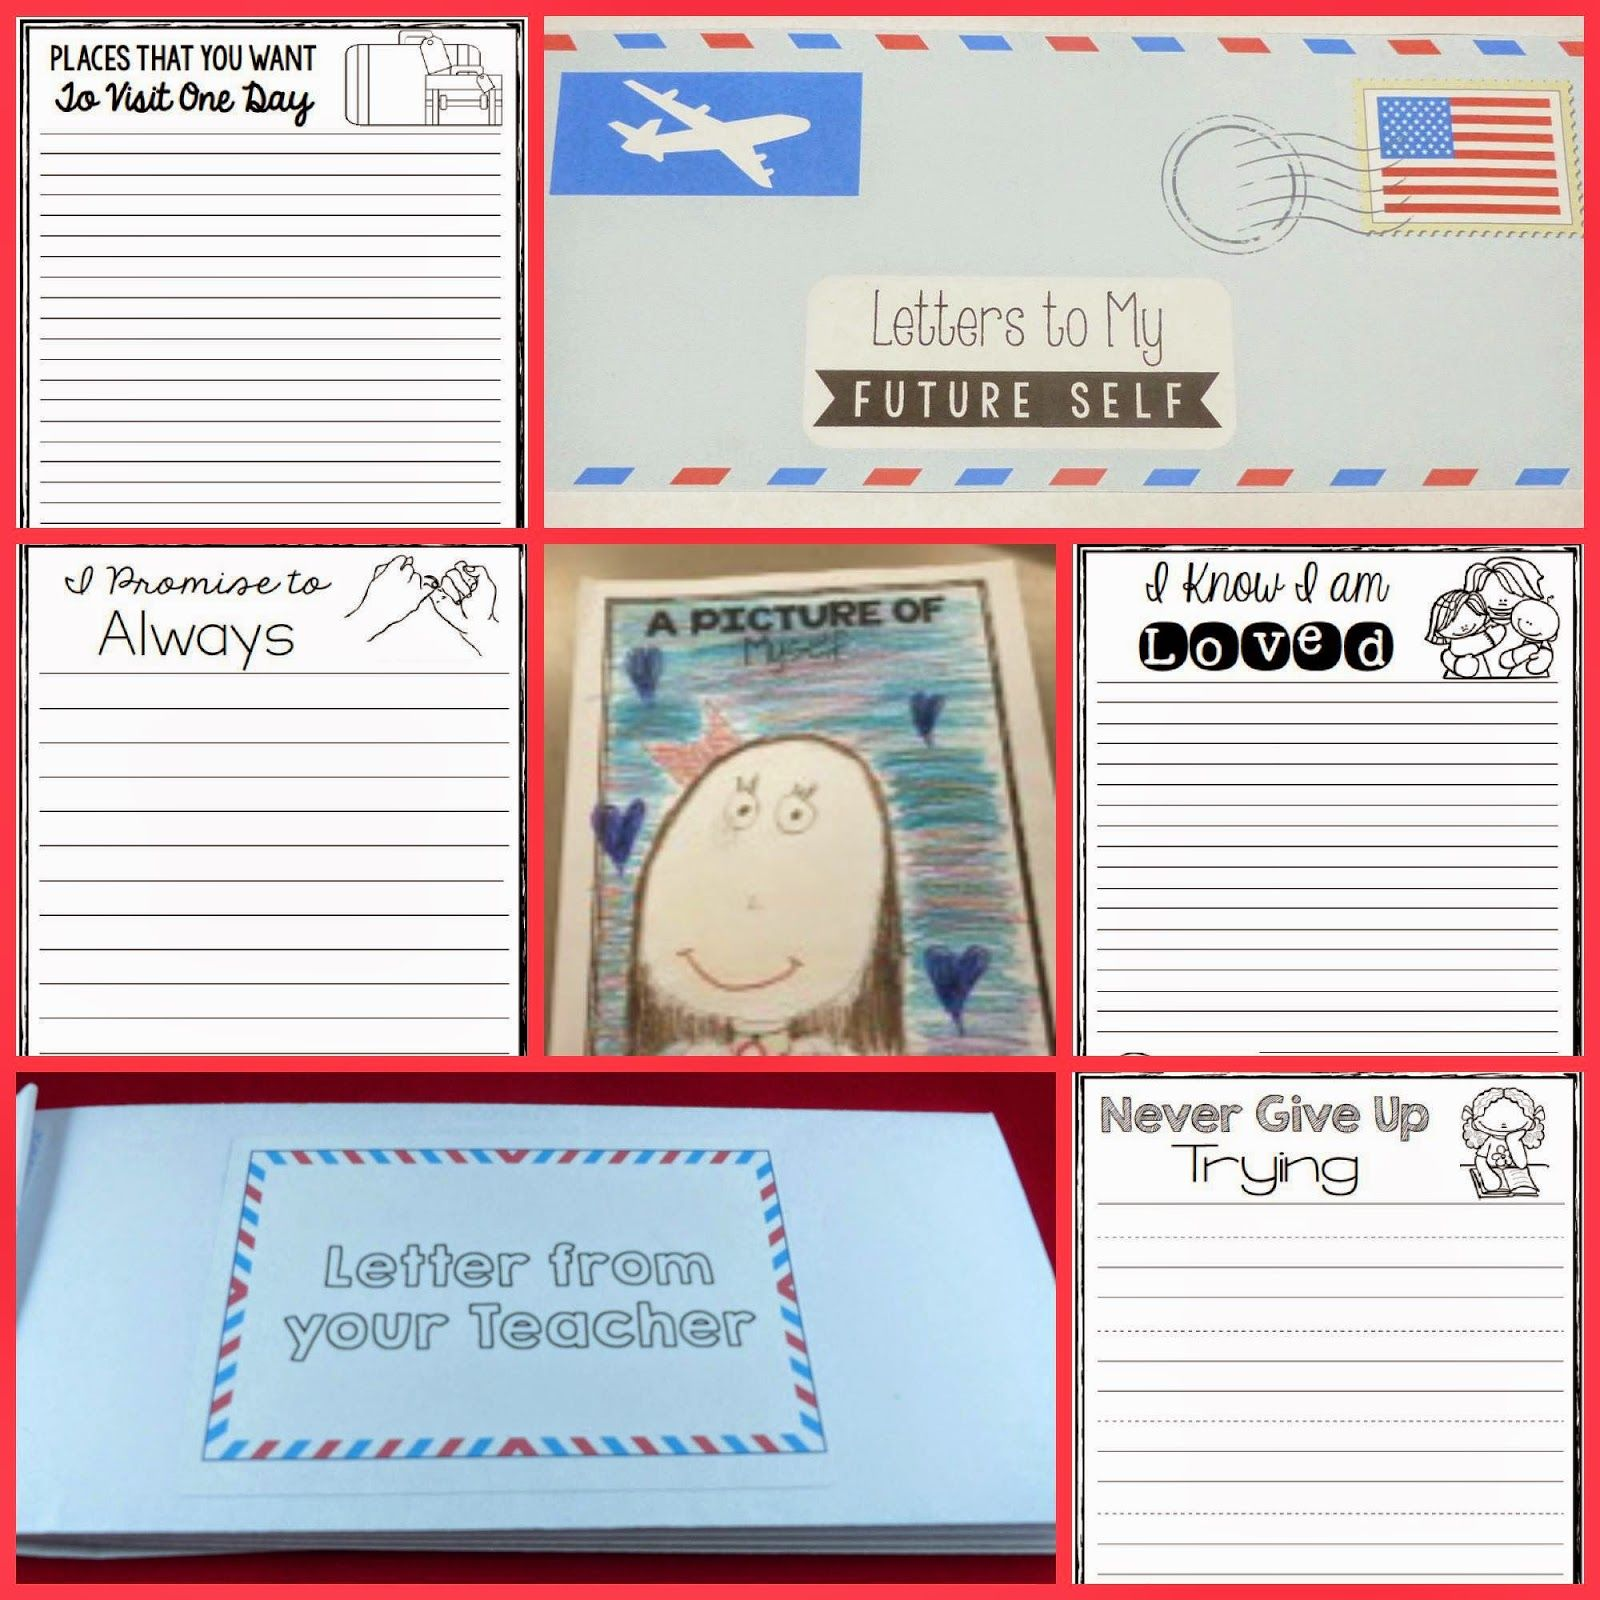 13+ Letter to future self example elementary school ideas in 2021